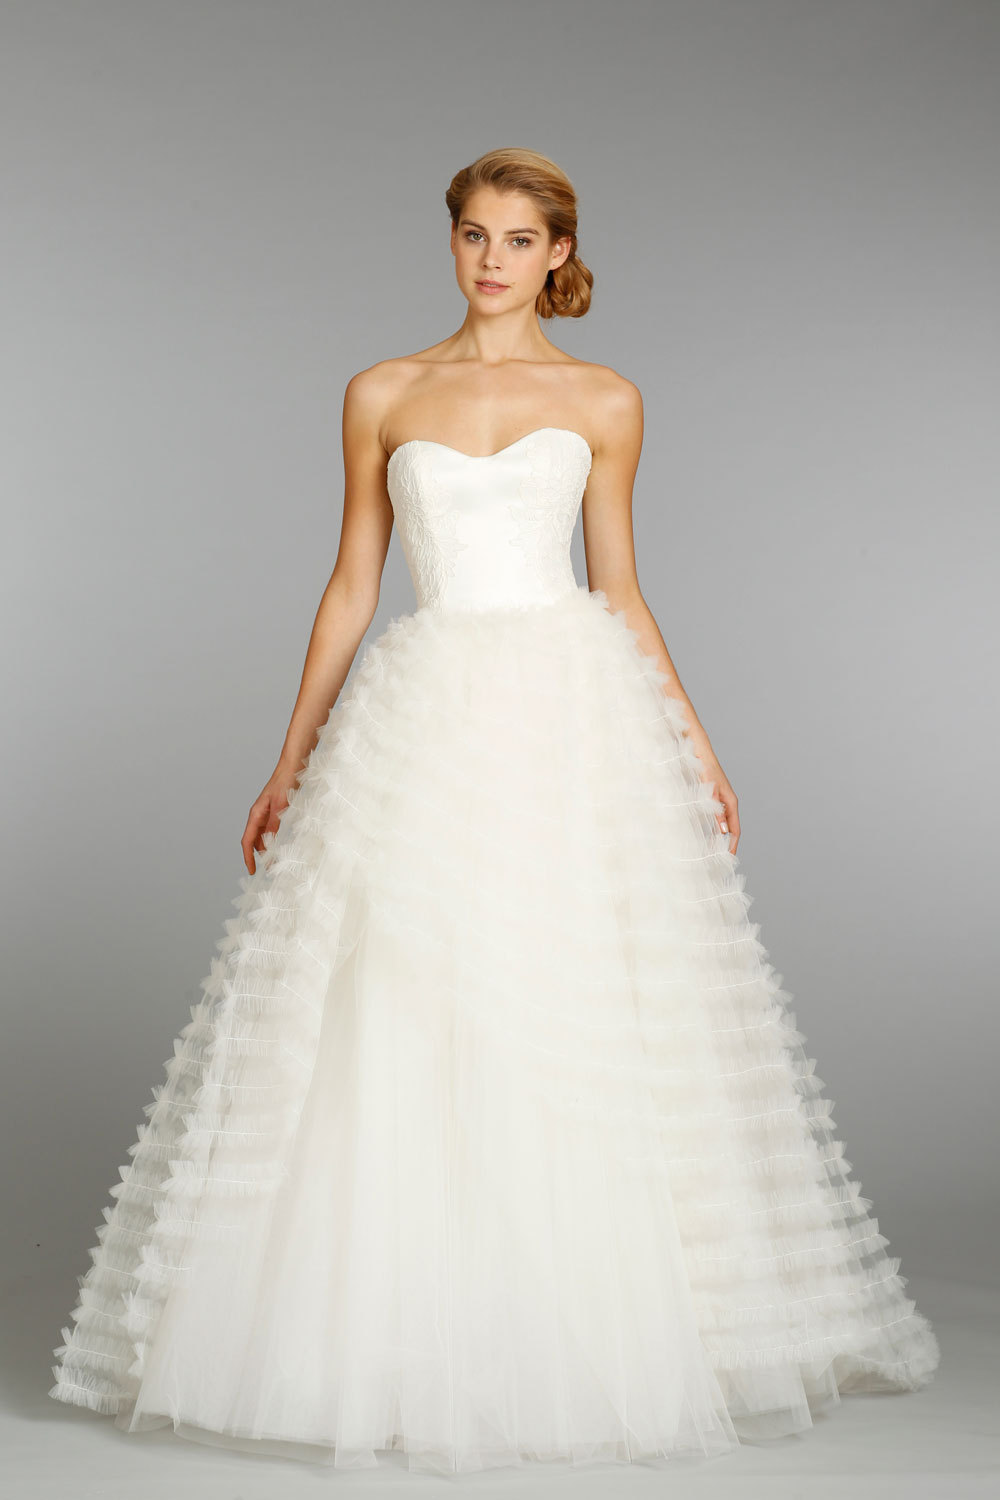 Jim hjelm wedding dress fall 2013 bridal for Jim hjelm wedding dresses